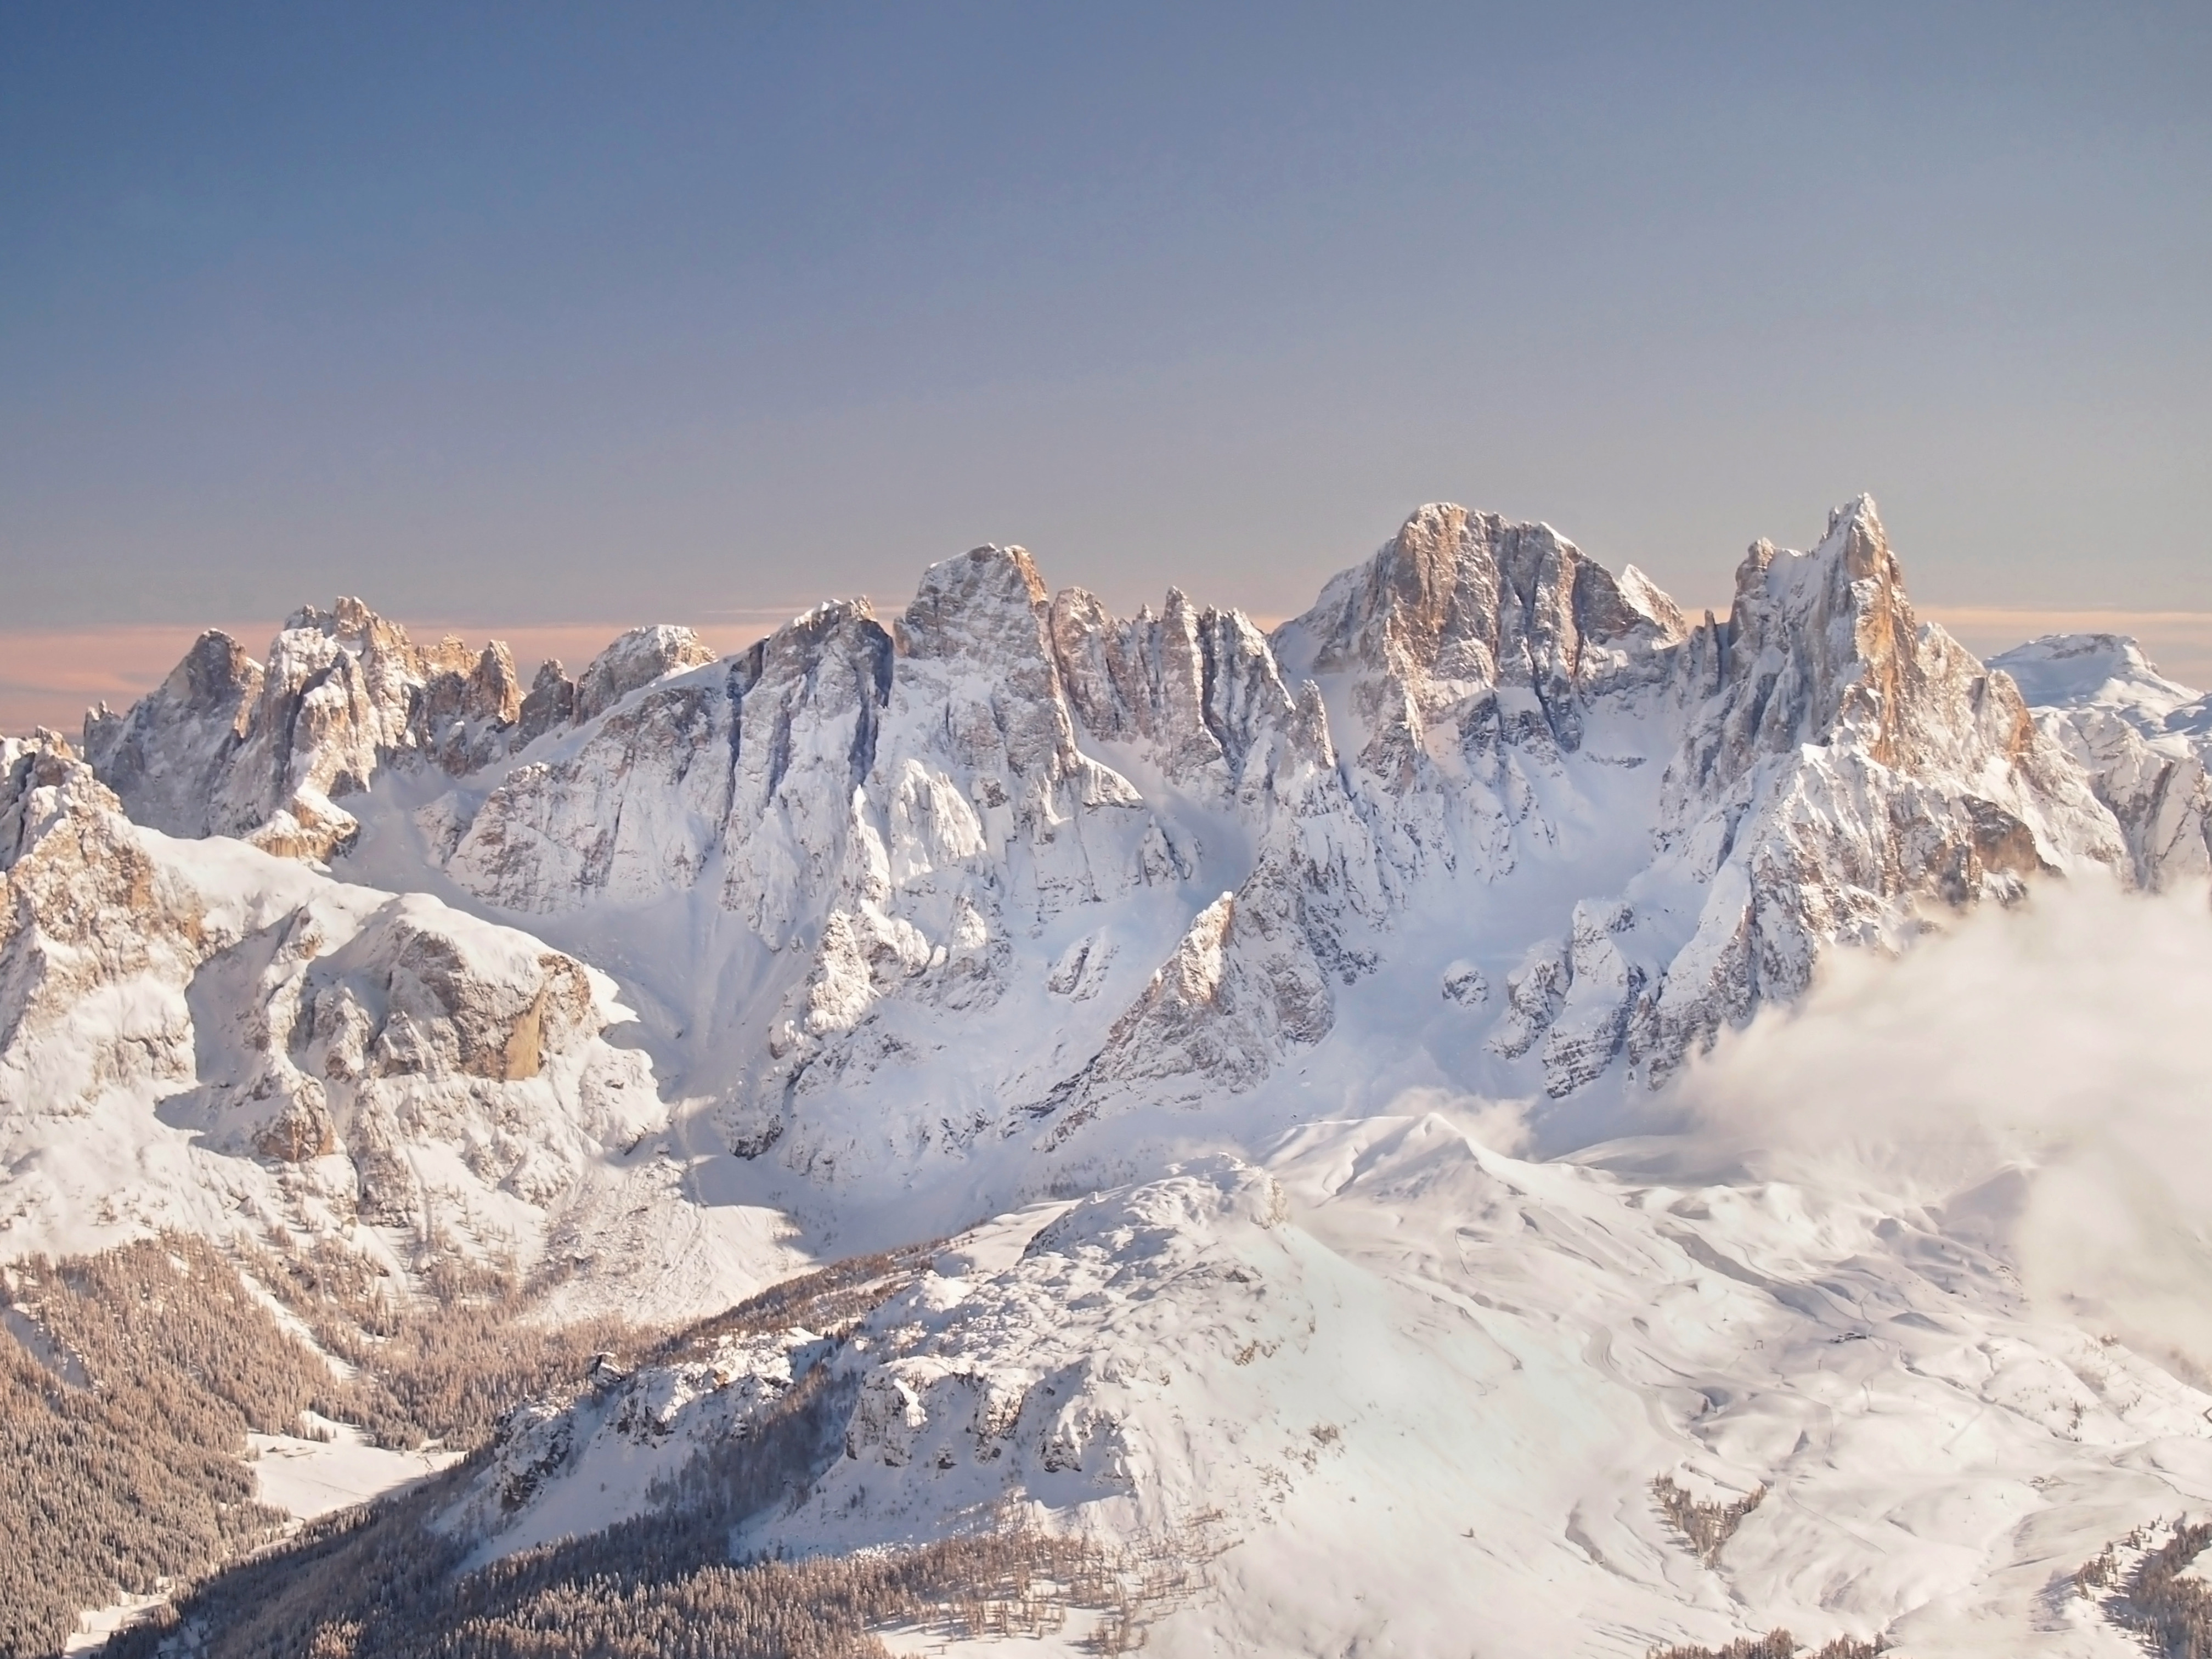 pale-di-san-martino-dolomiti-unesco-ph.andreas-tamanini